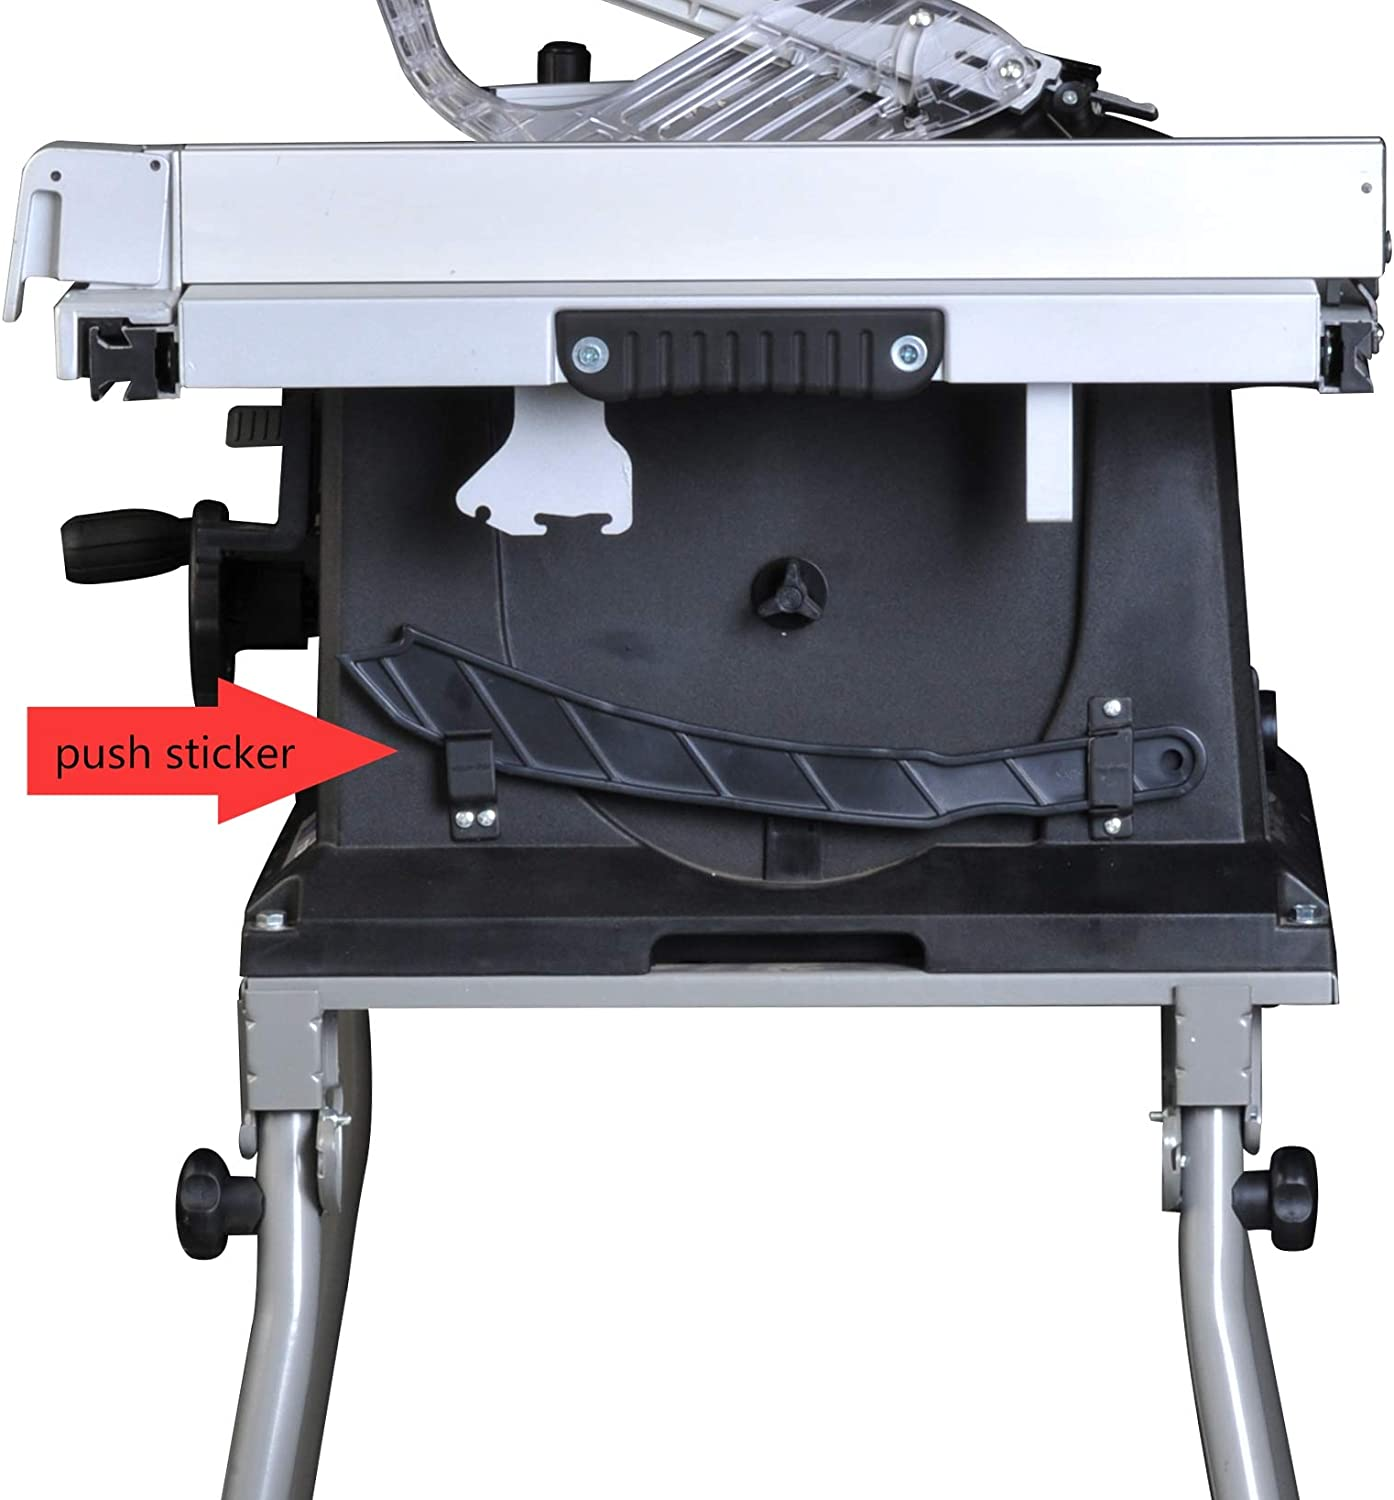 Dobetter DBTS10 Table Saws product image 4